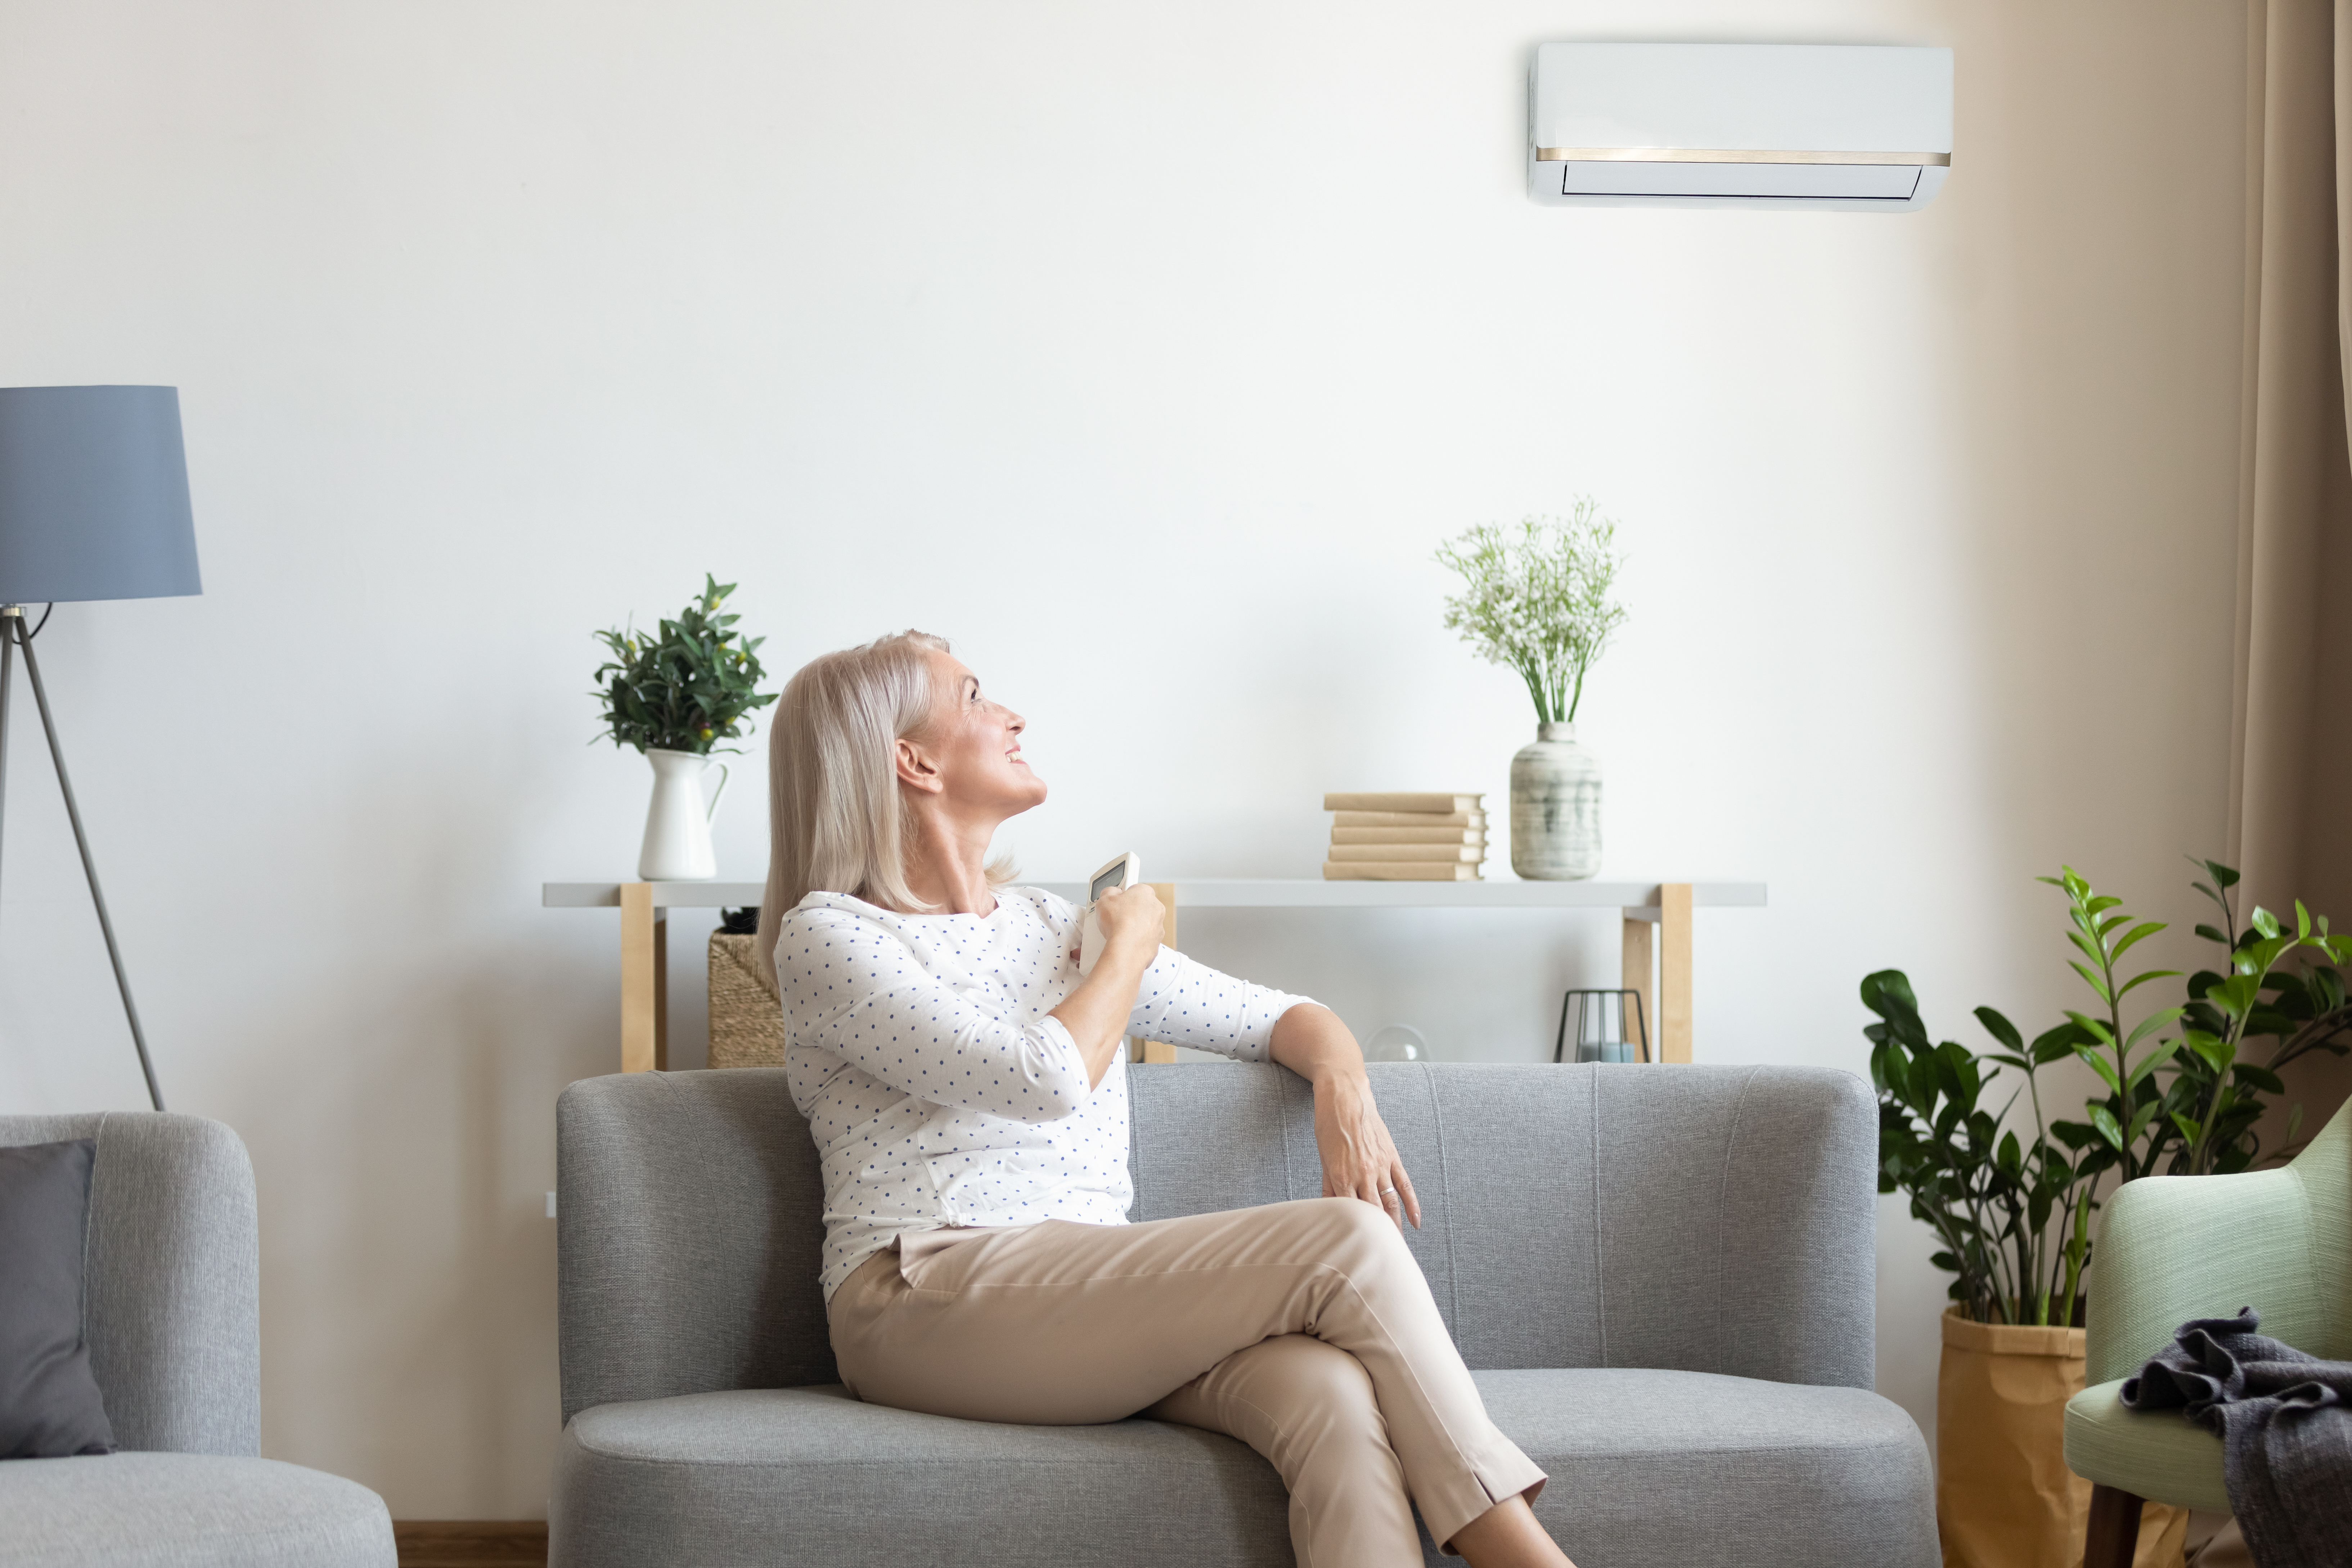 Middle aged woman switching on air conditioner in living room